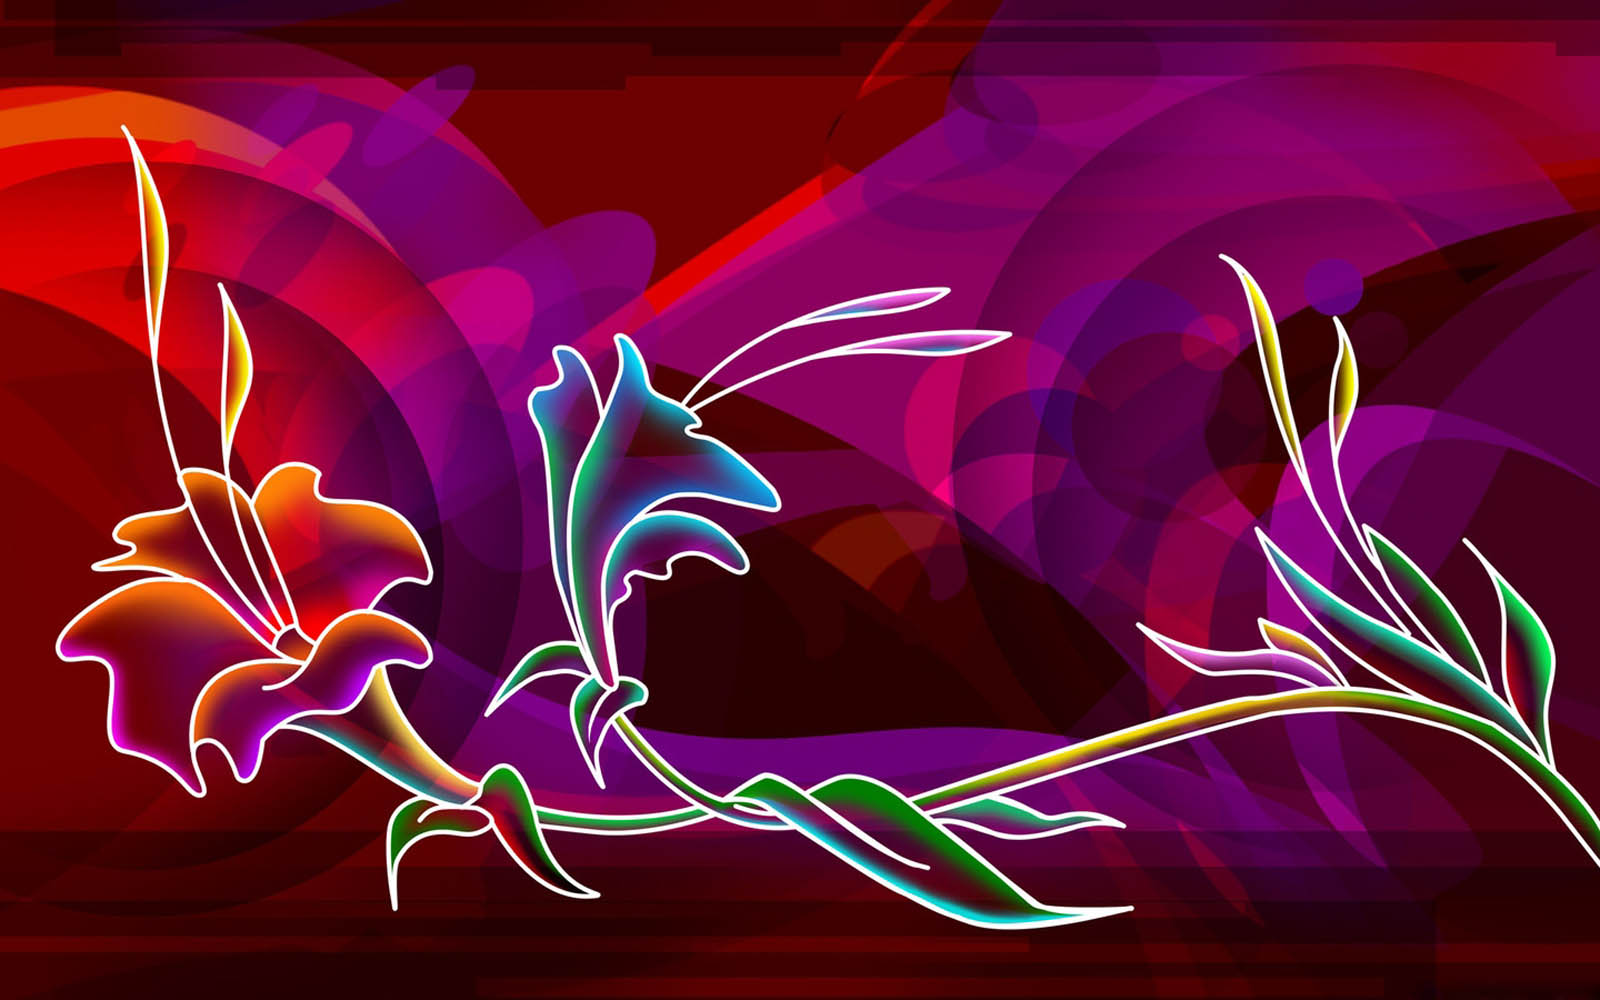 Tag: Neon Art Wallpapers, Backgrounds, Photos,Images and Pictures for